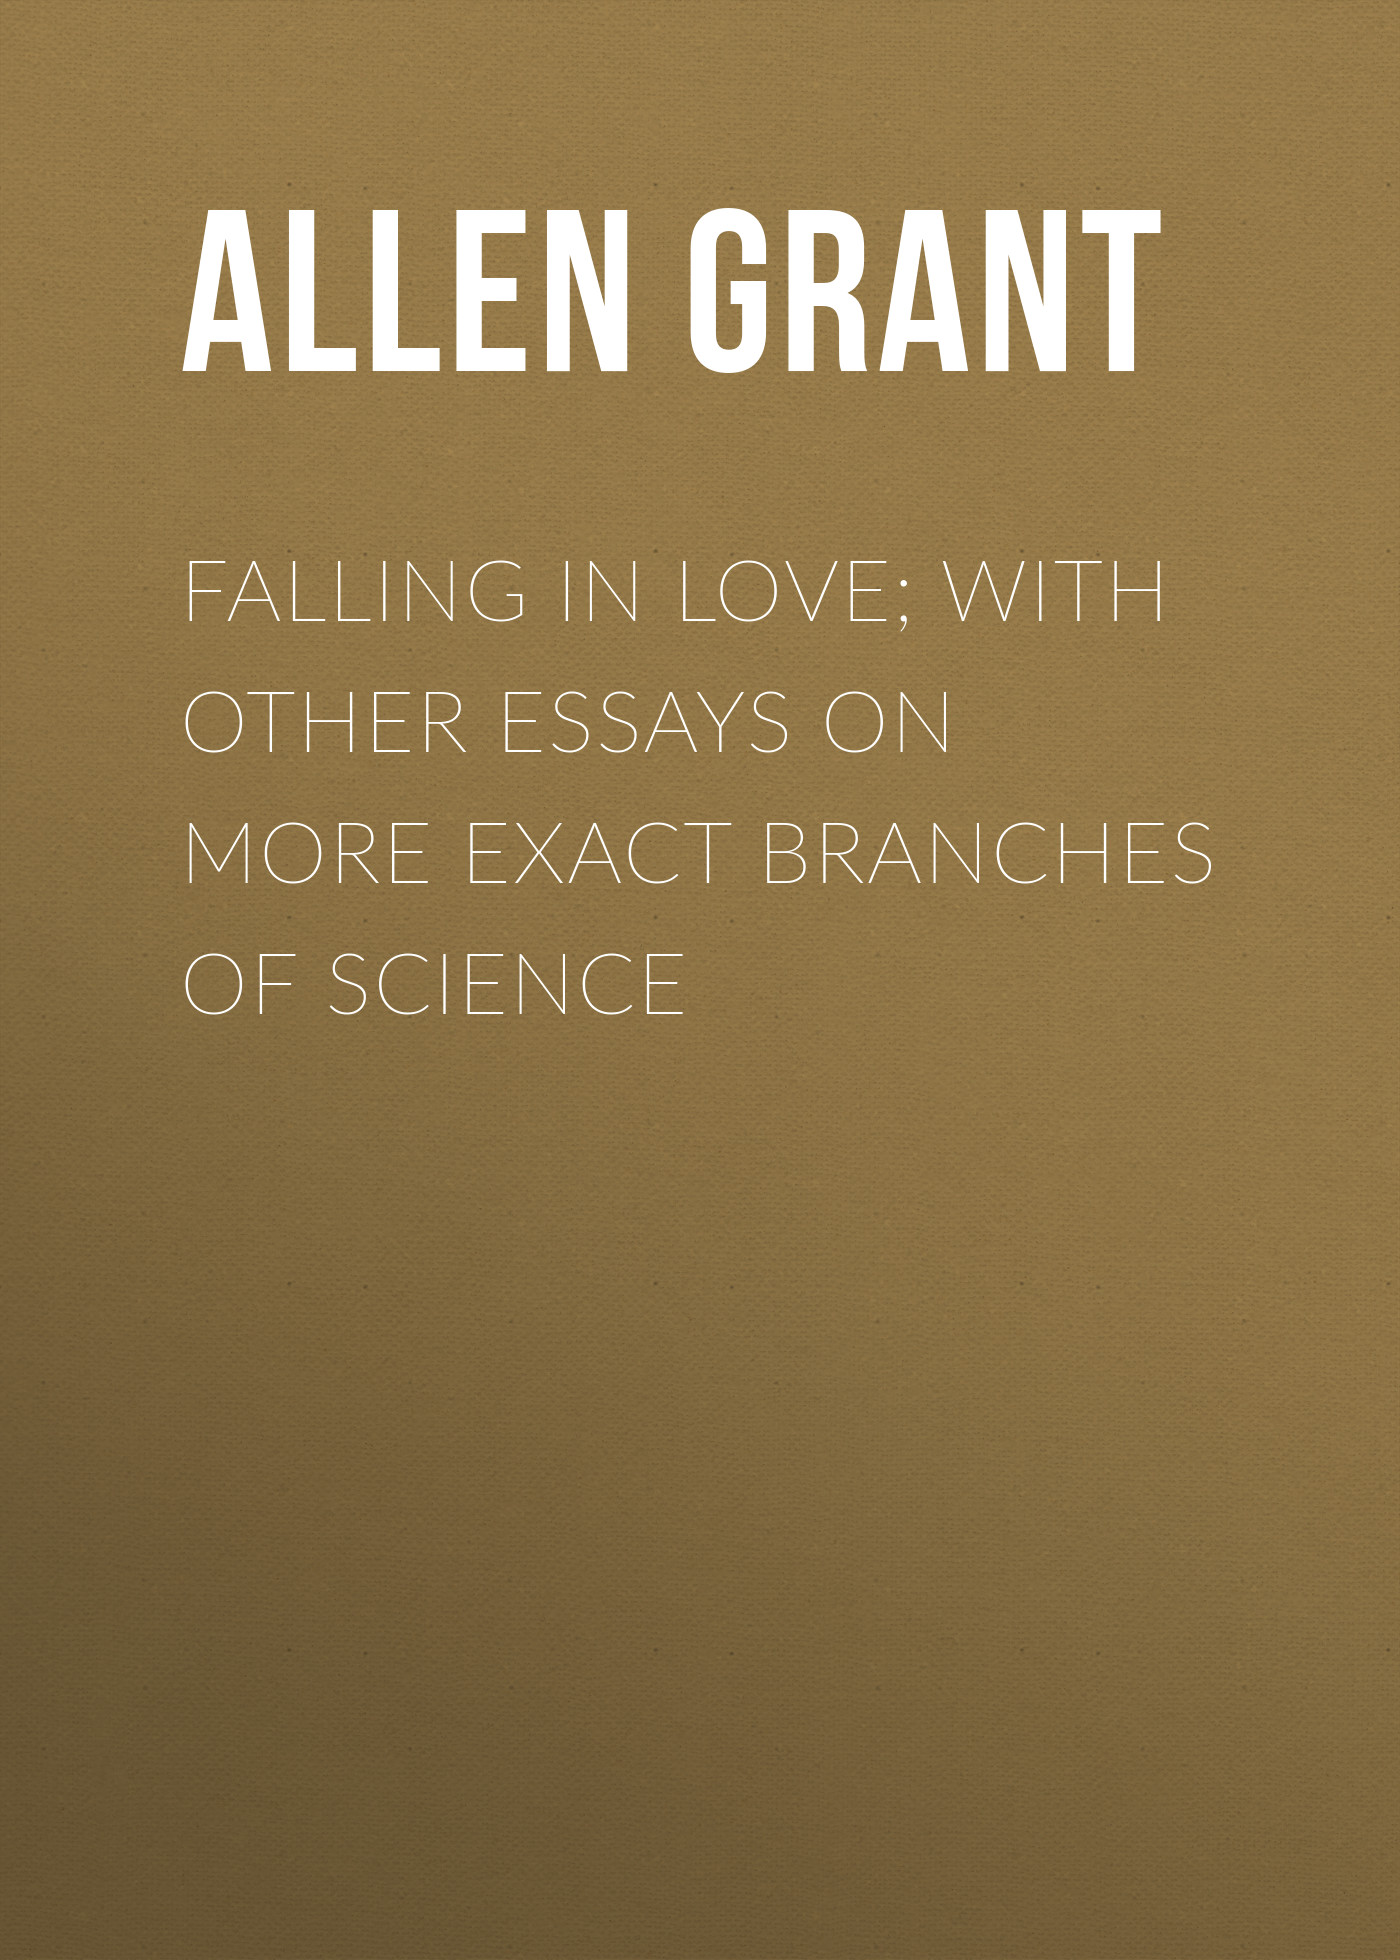 лучшая цена Allen Grant Falling in Love; With Other Essays on More Exact Branches of Science